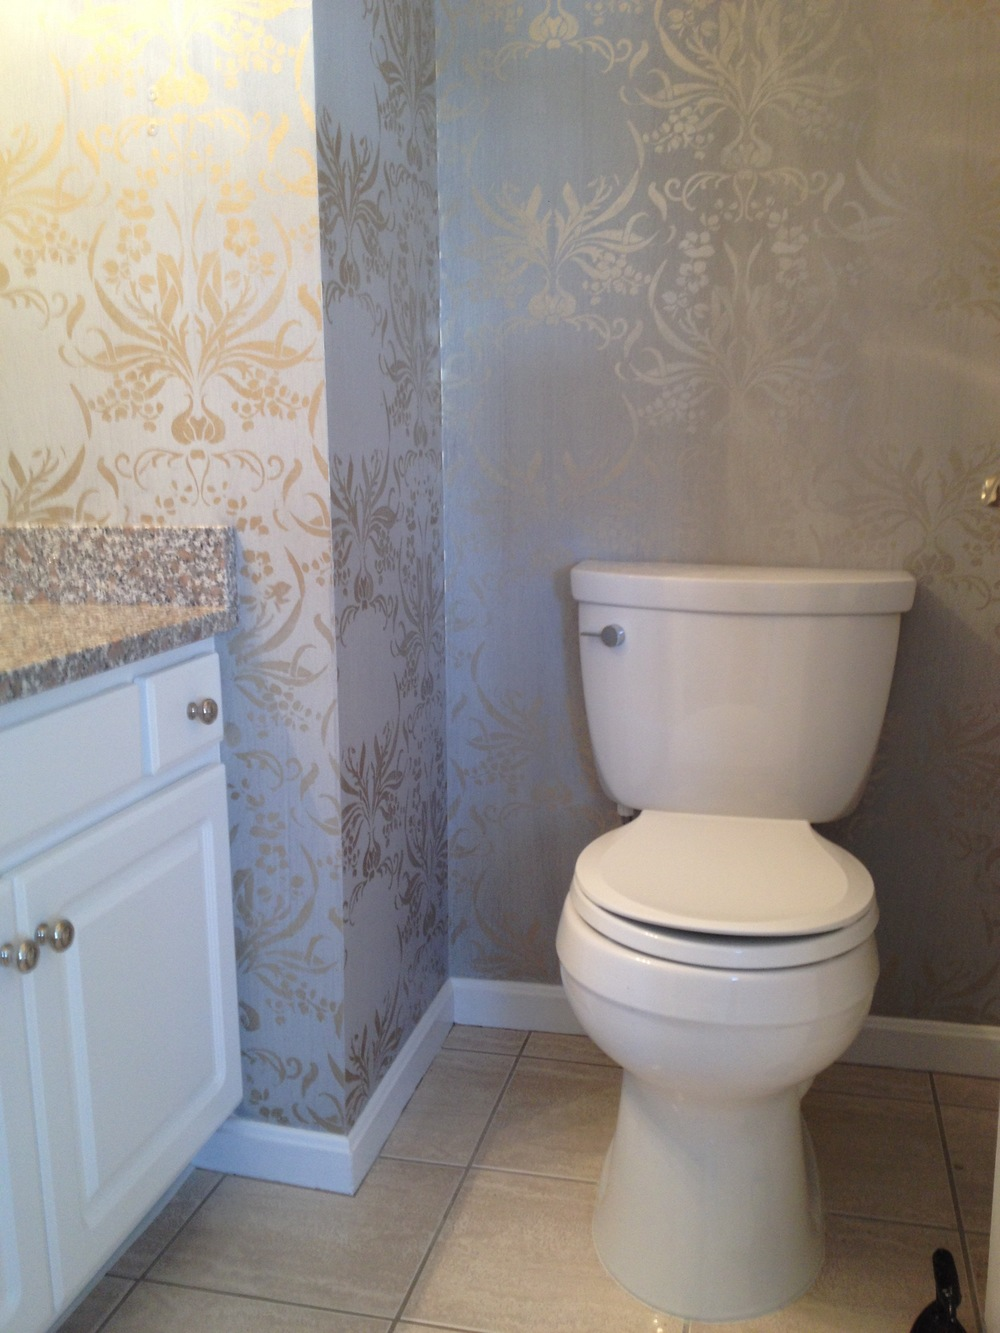 Powder room - another view